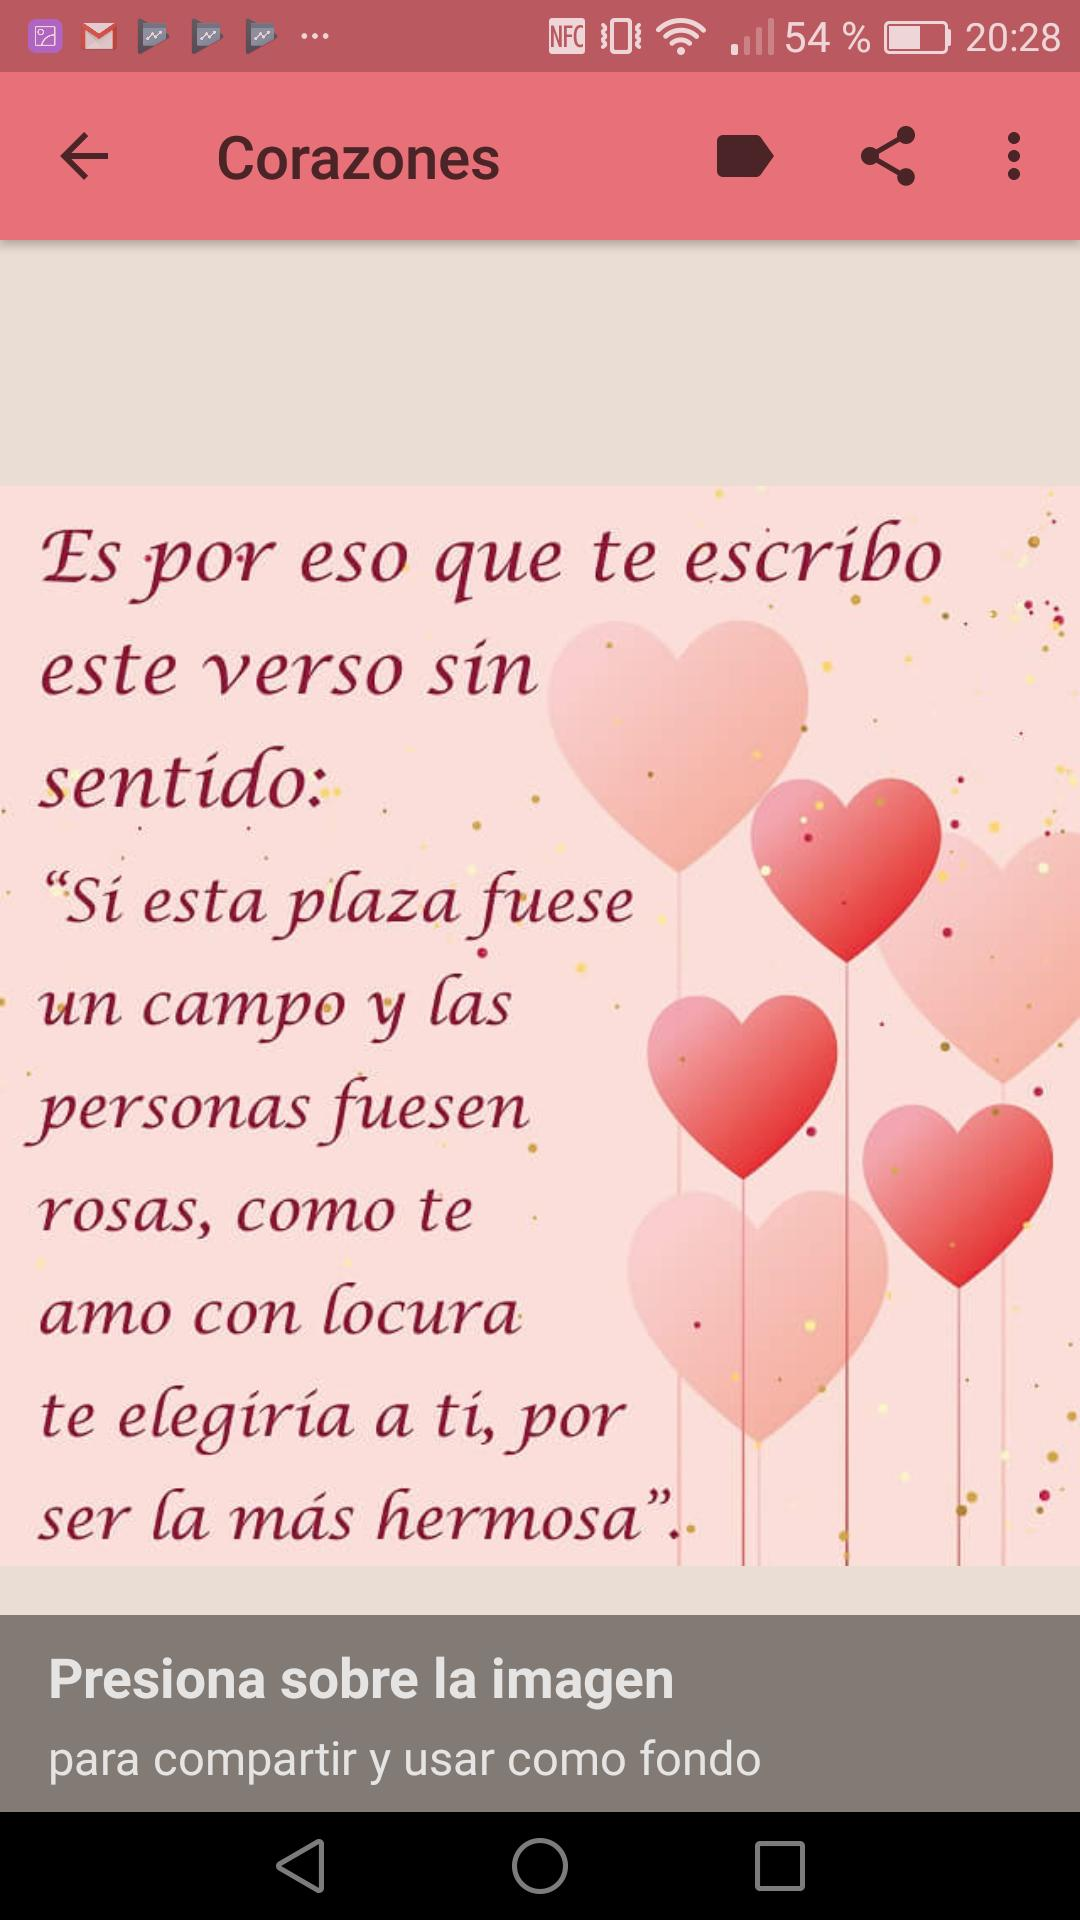 Corazones Y Rosas Con Frases De Amor For Android Apk Download